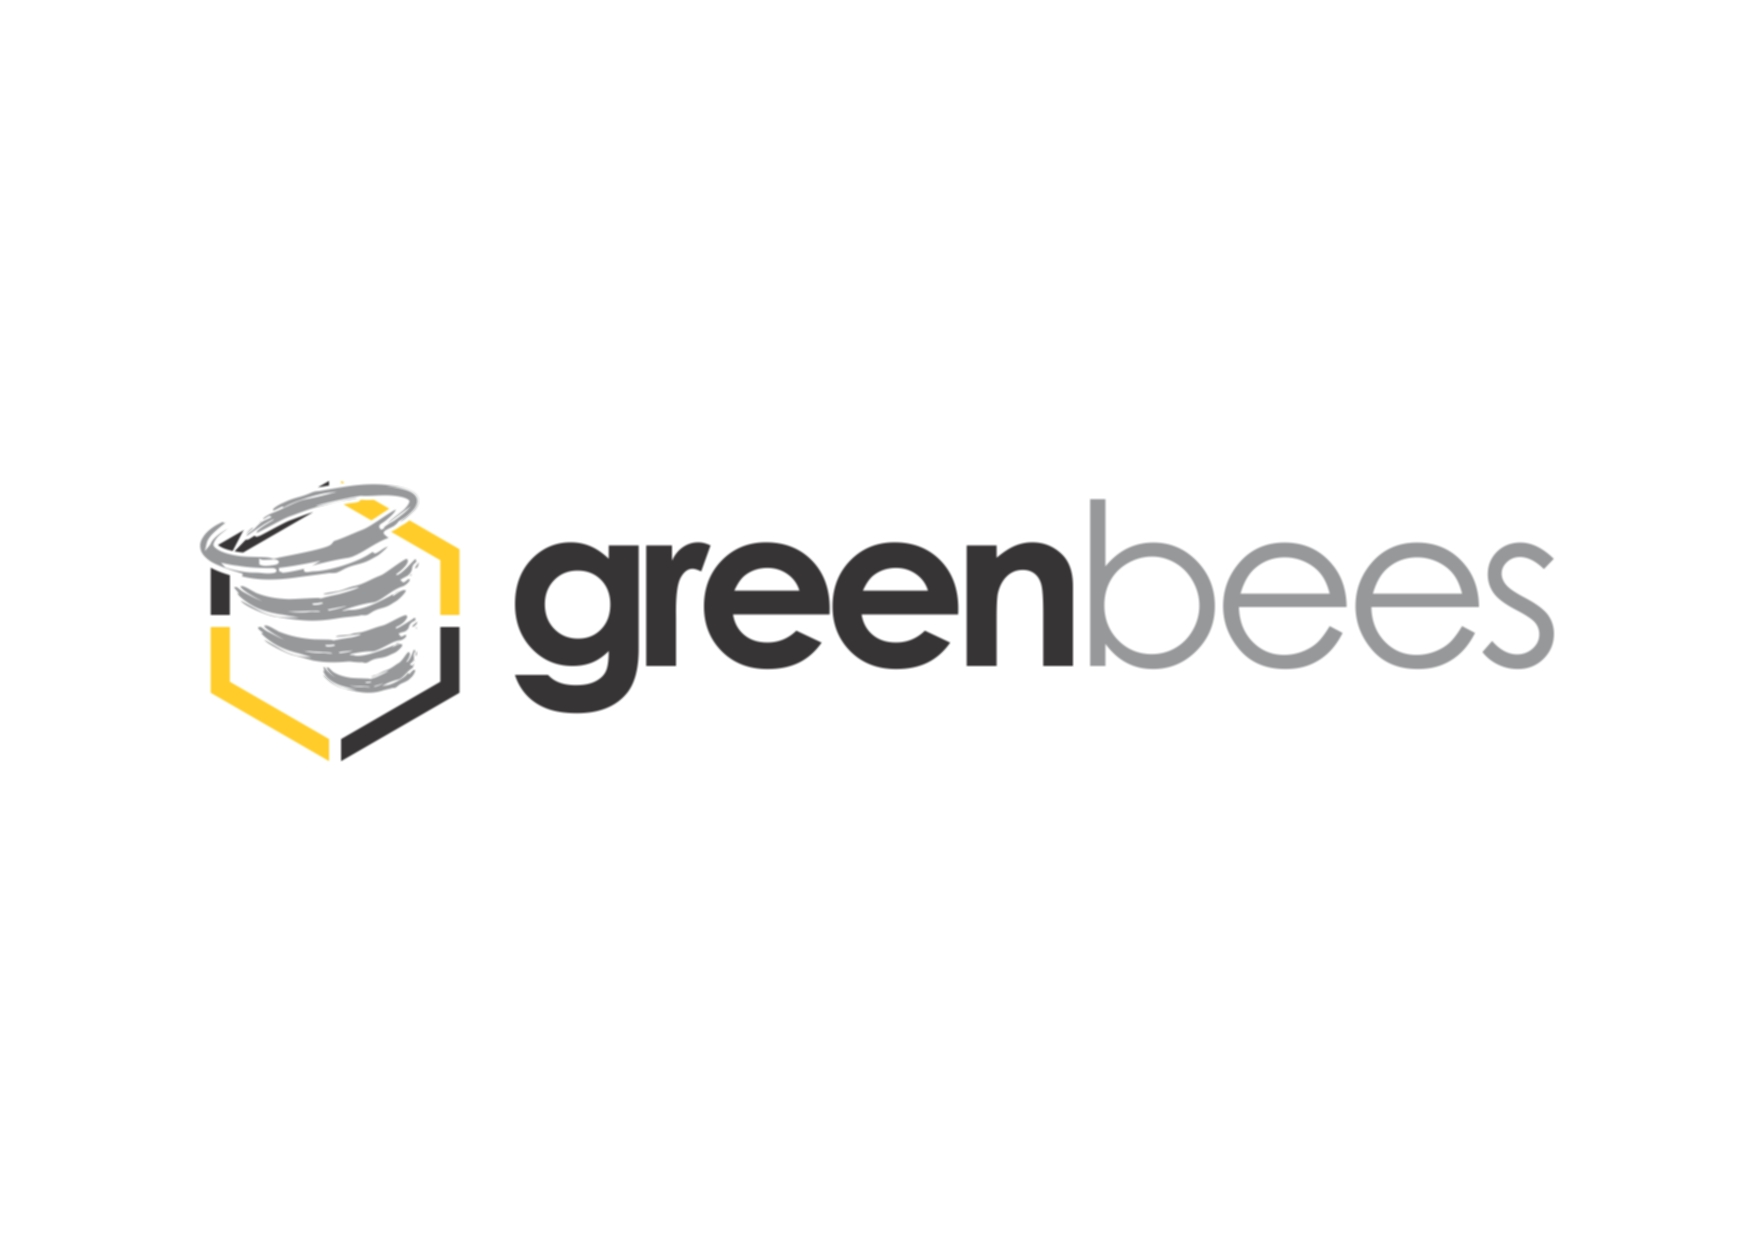 Logo Design by Private User - Entry No. 139 in the Logo Design Contest Greenbees Logo Design.